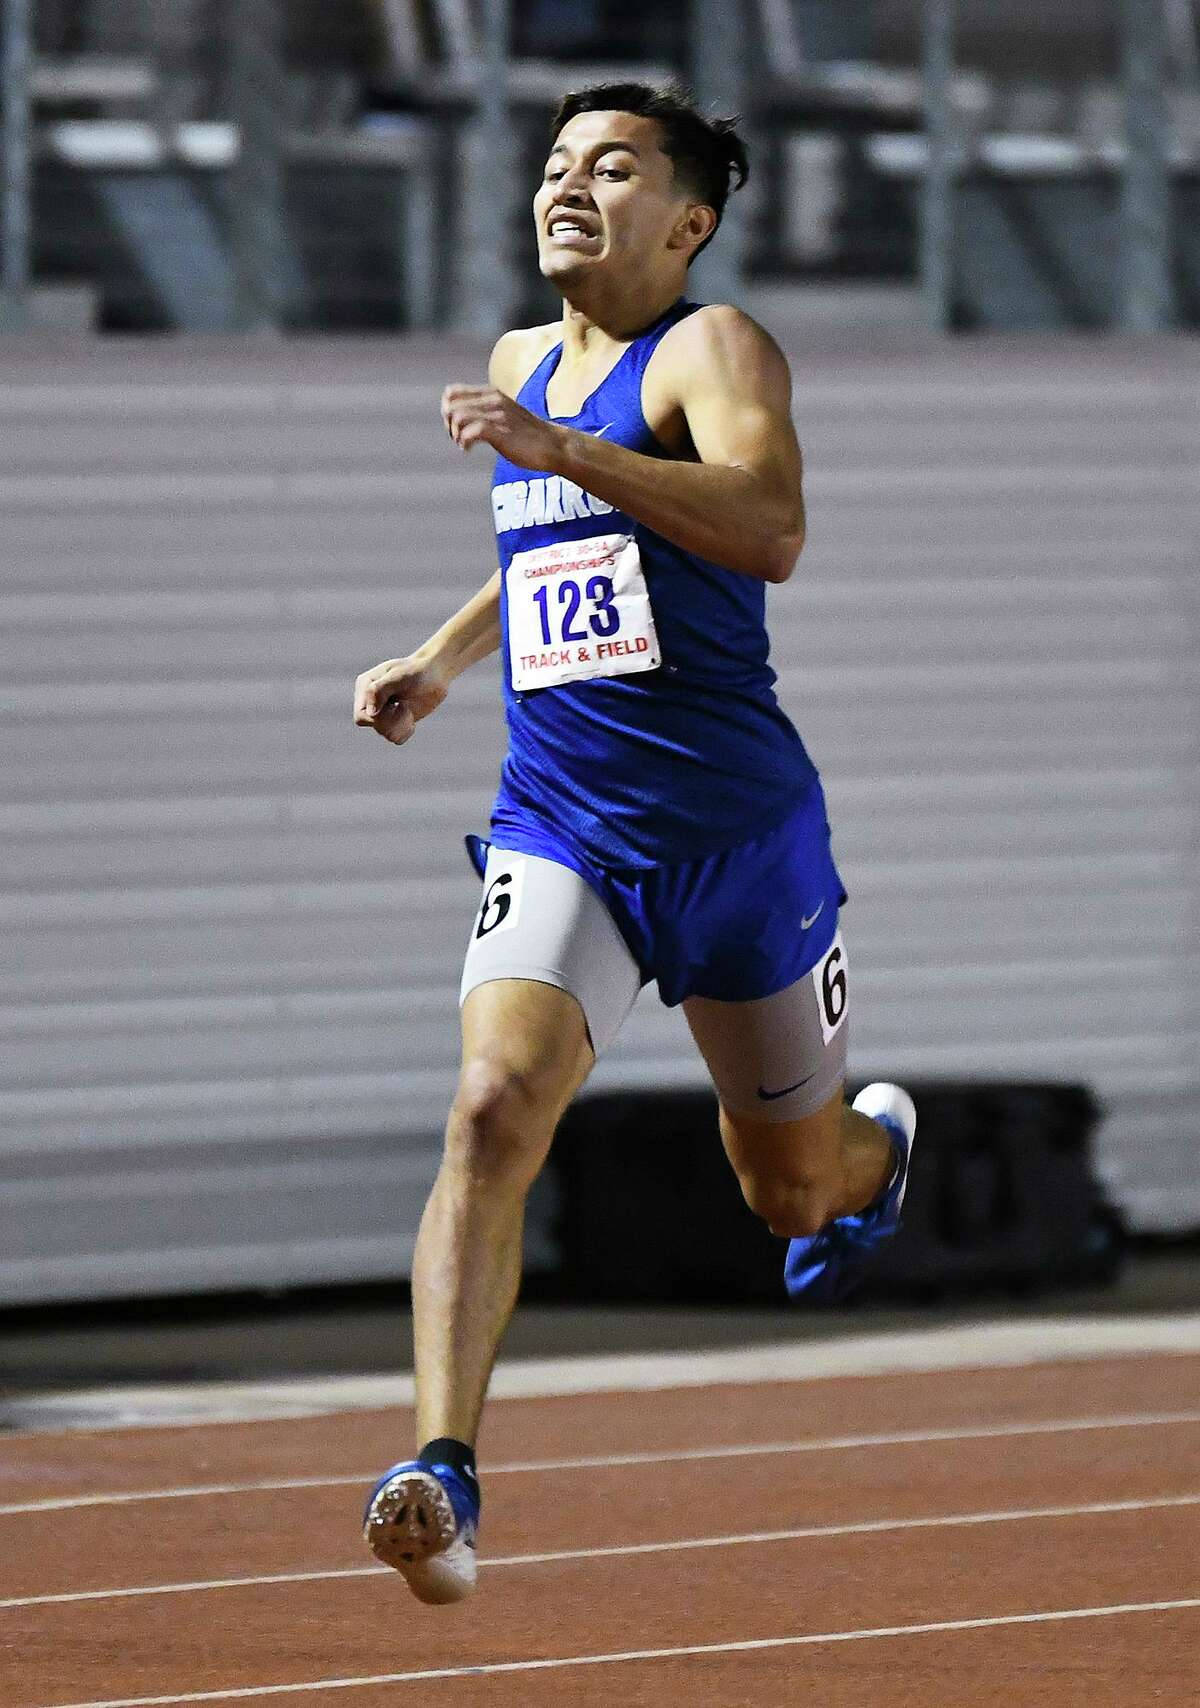 Gilbert Garcia competes in the 400-meter dash at Wednesday's District 30-5A meet. Garcia finished in 51.20 to win the event, and he also won the 800-meter run finishing in 2:02.76.